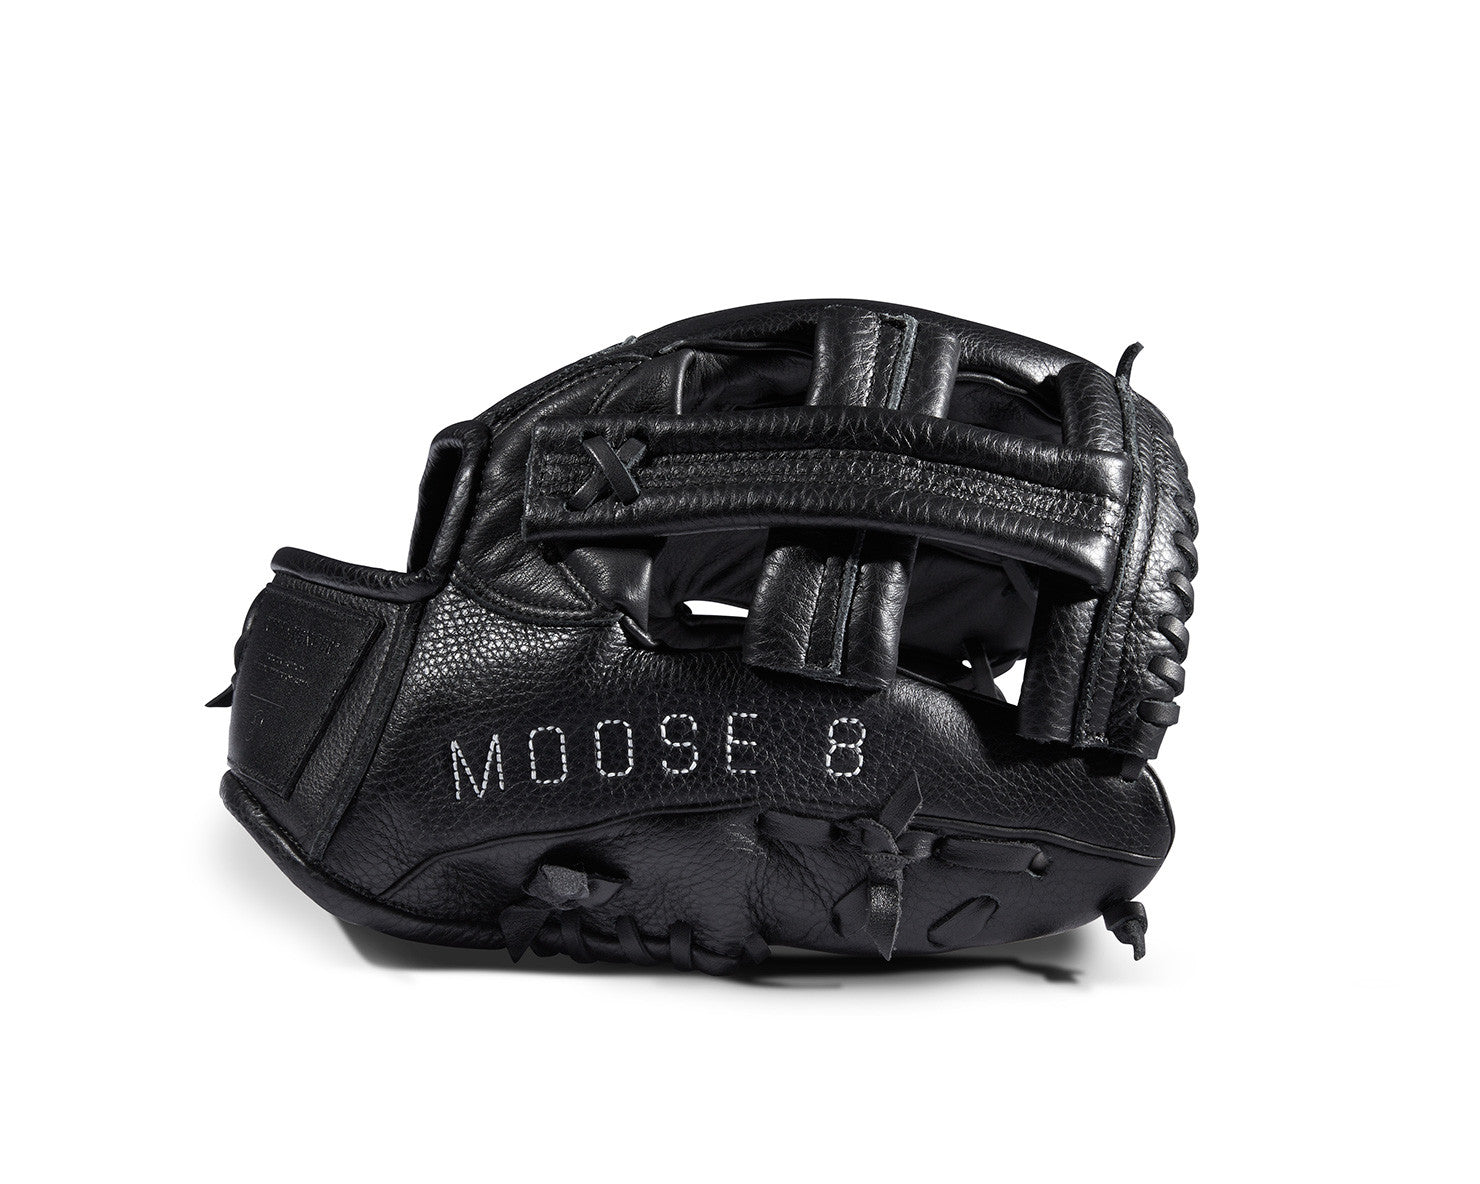 BASEBALL GLOVE | KILLSPENCER® - Black Leather